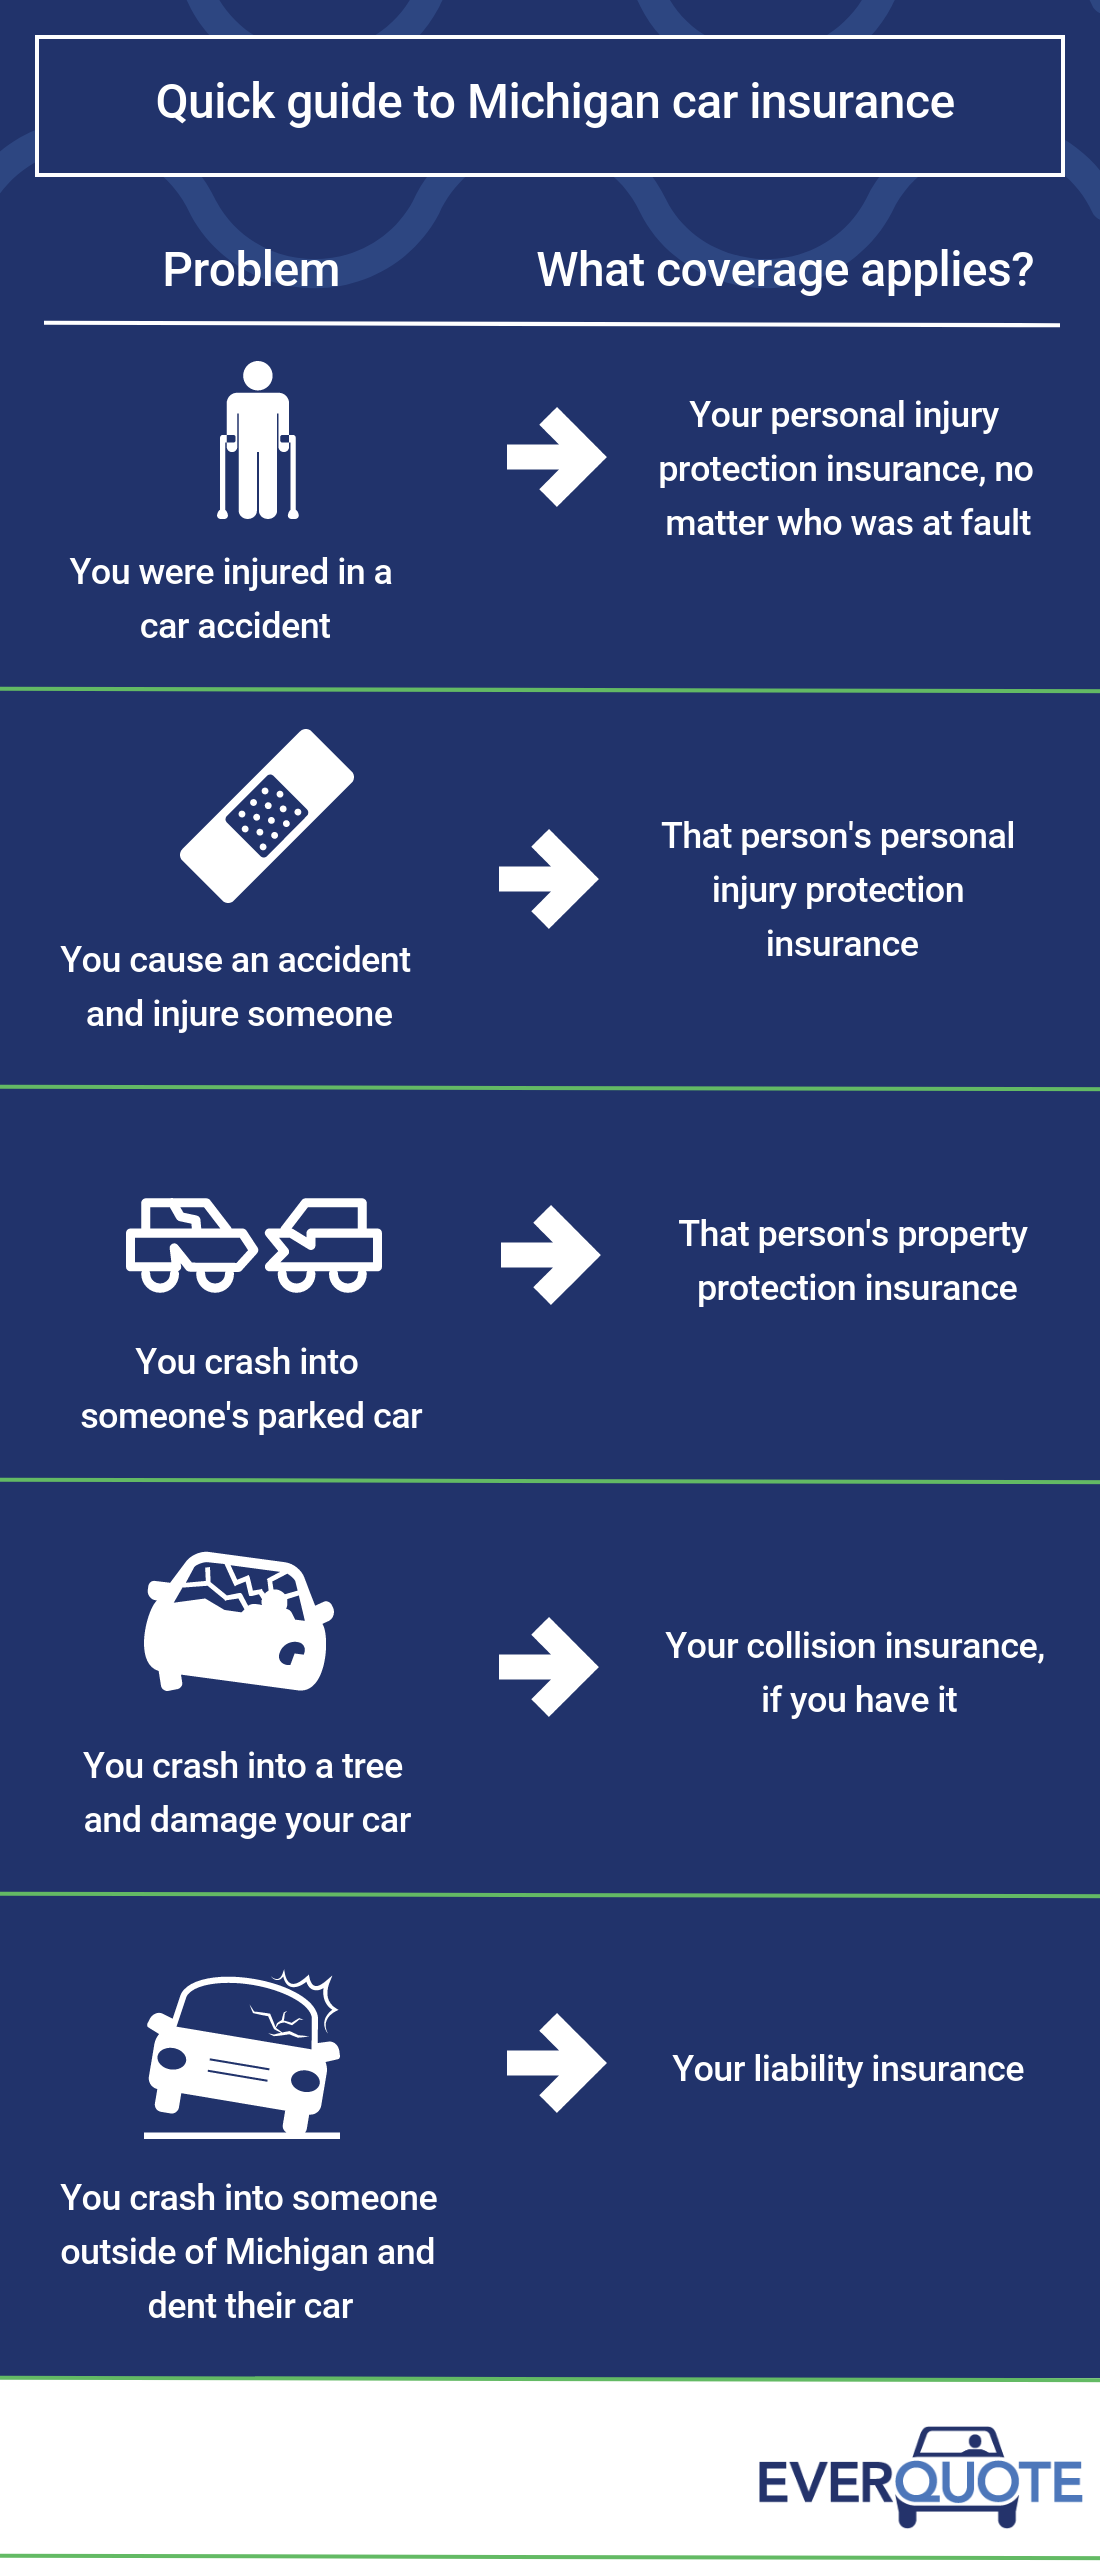 Quick guide to Michigan car insurance